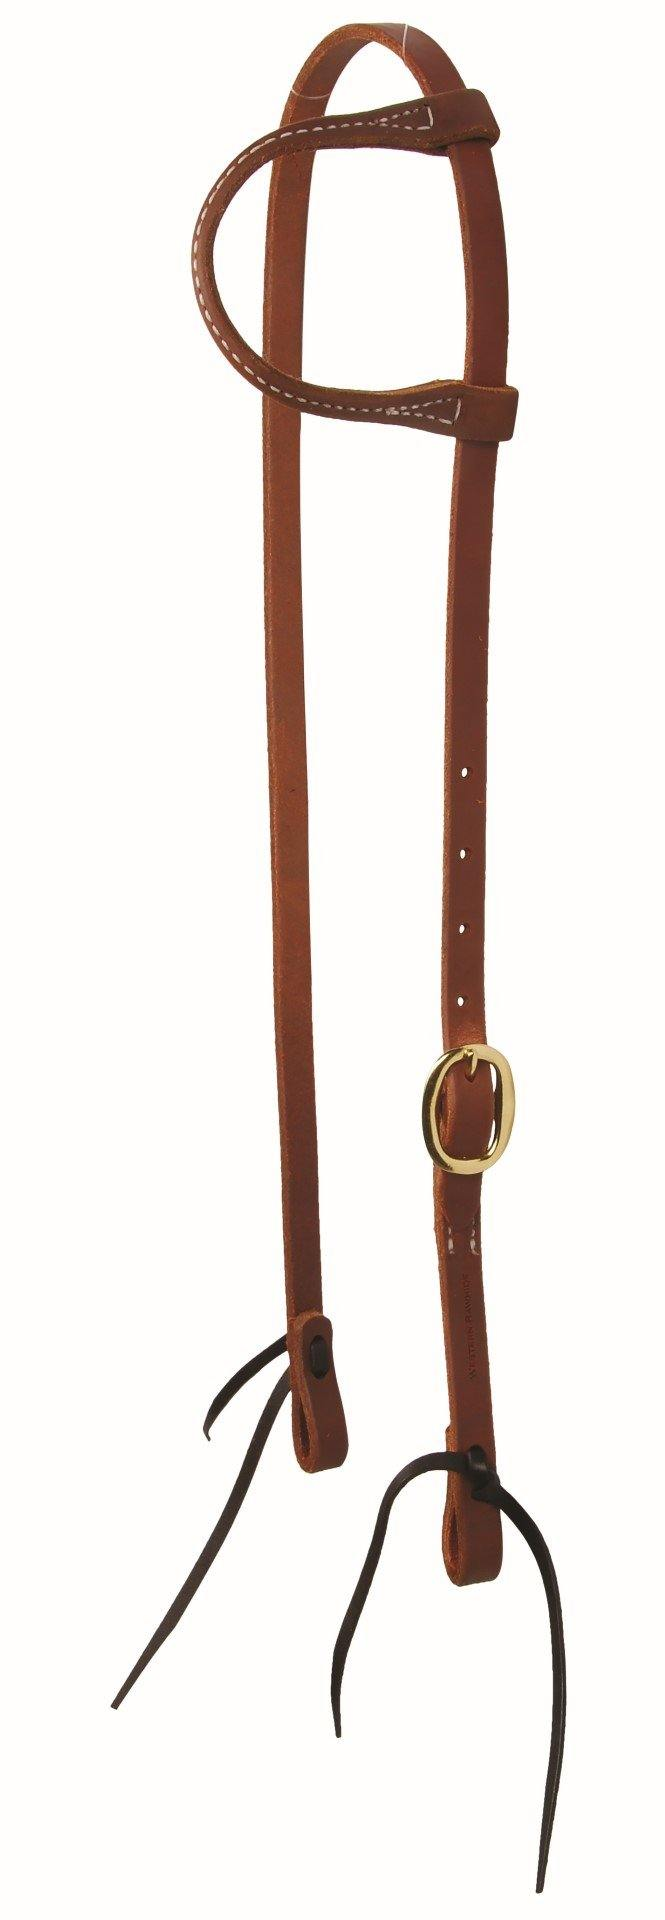 Training Ear Headstall with Ties-Brass Buckles